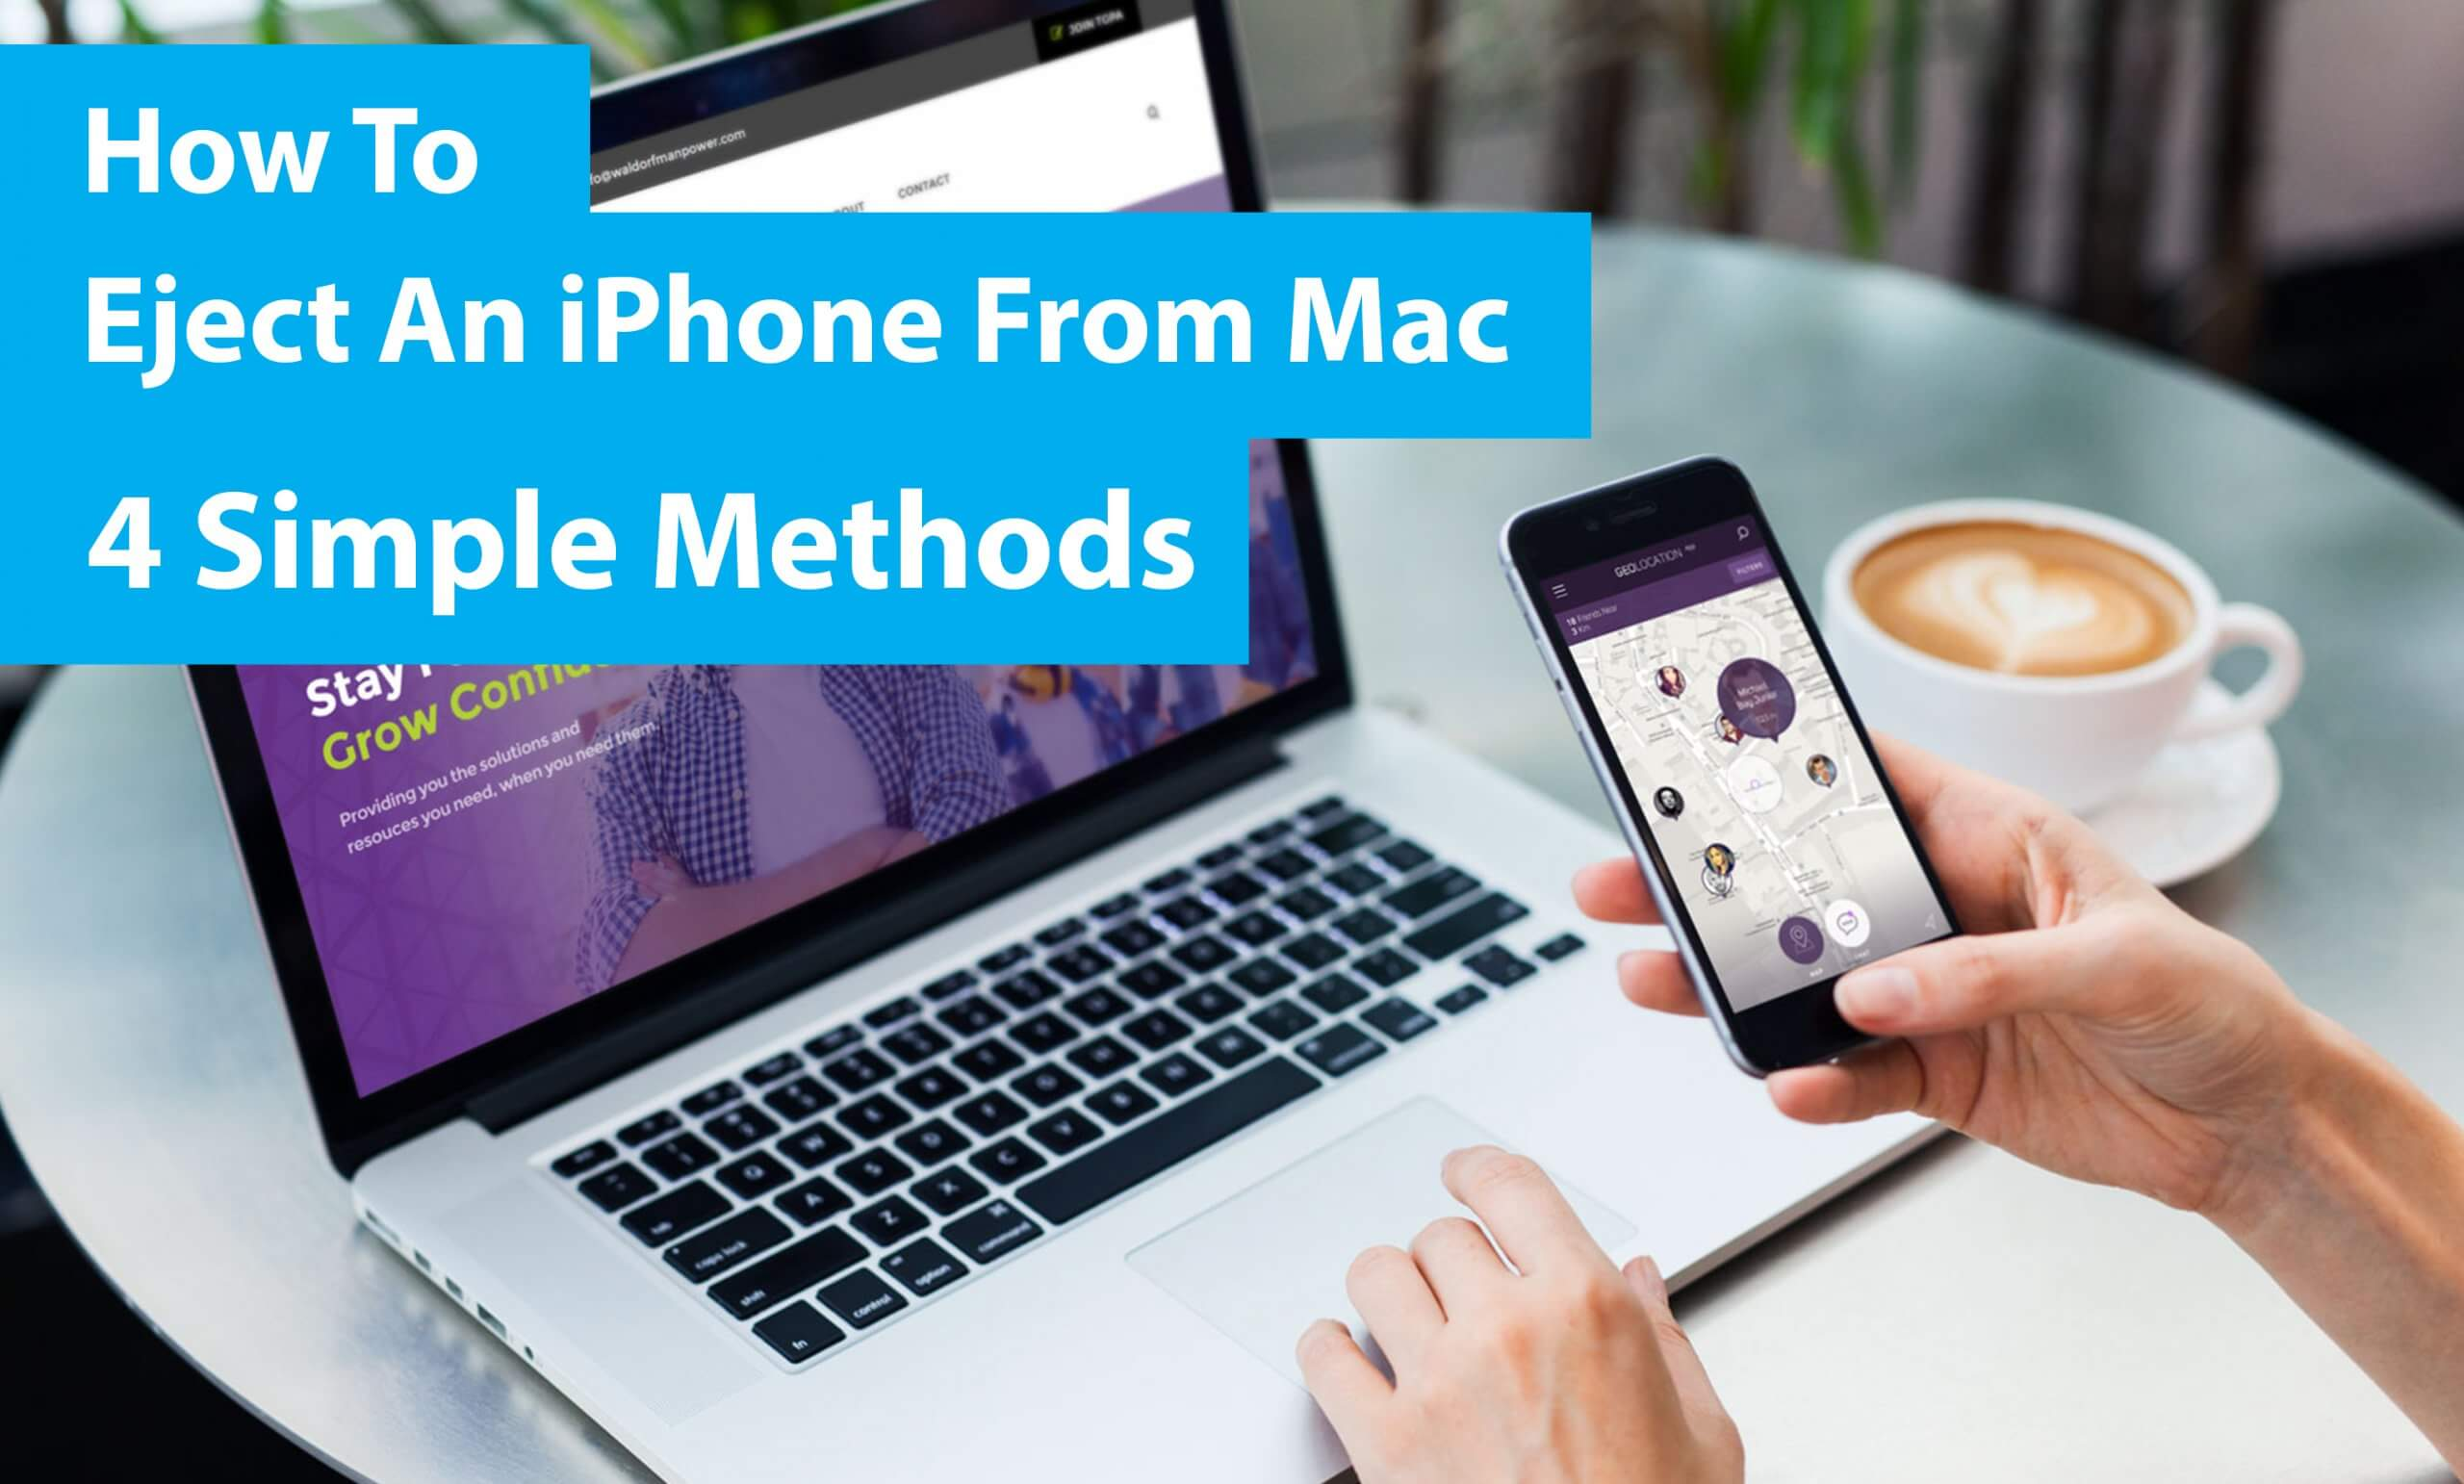 How To Eject An iPhone From Mac